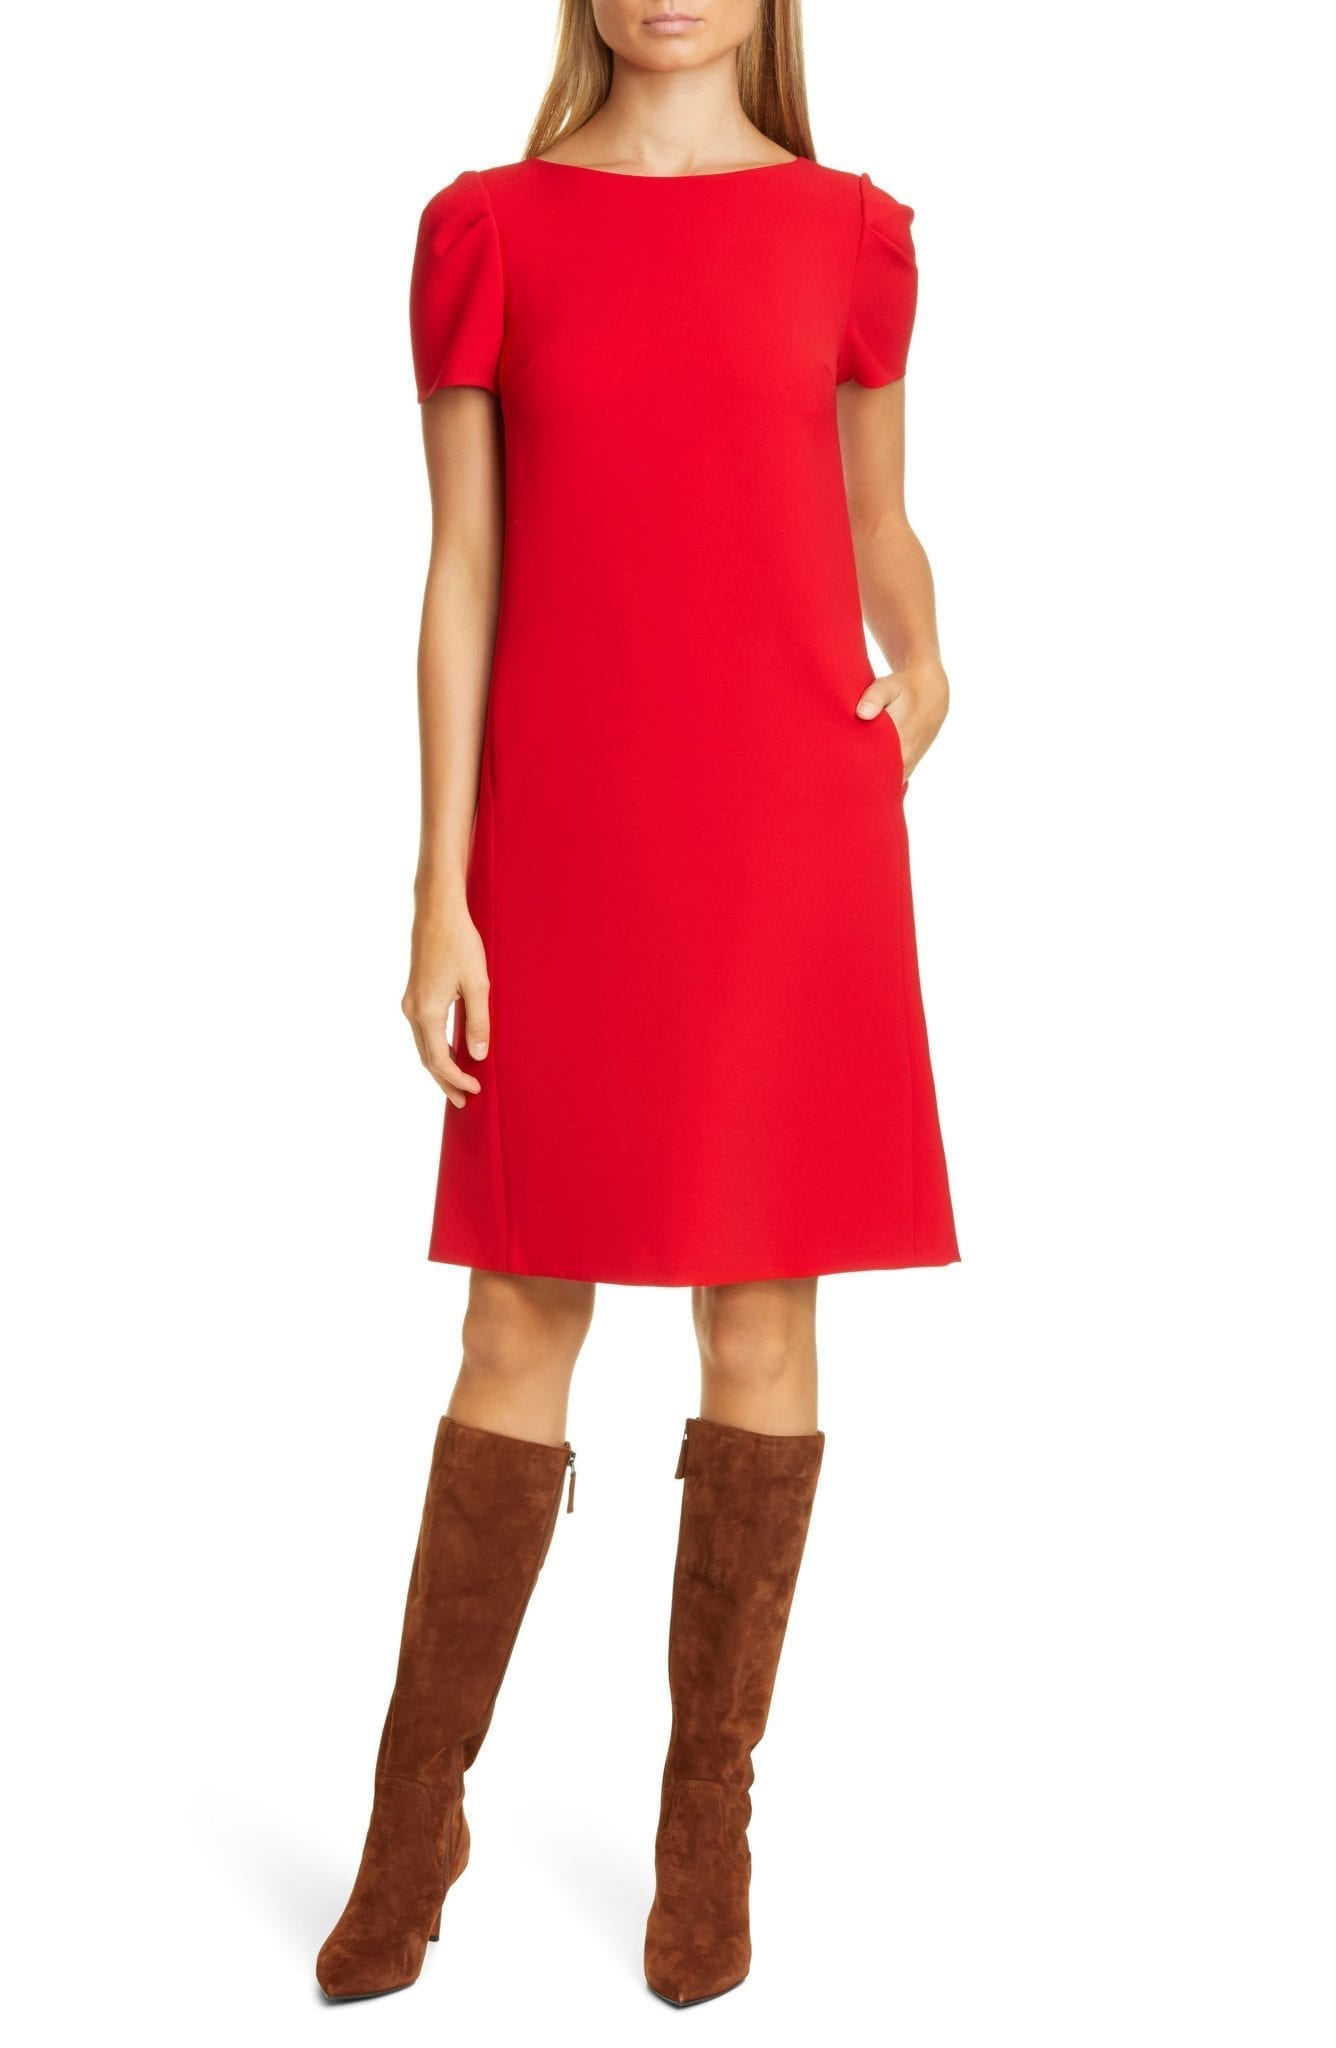 LAFAYETTE 148 NEW YORK Cohen Dress